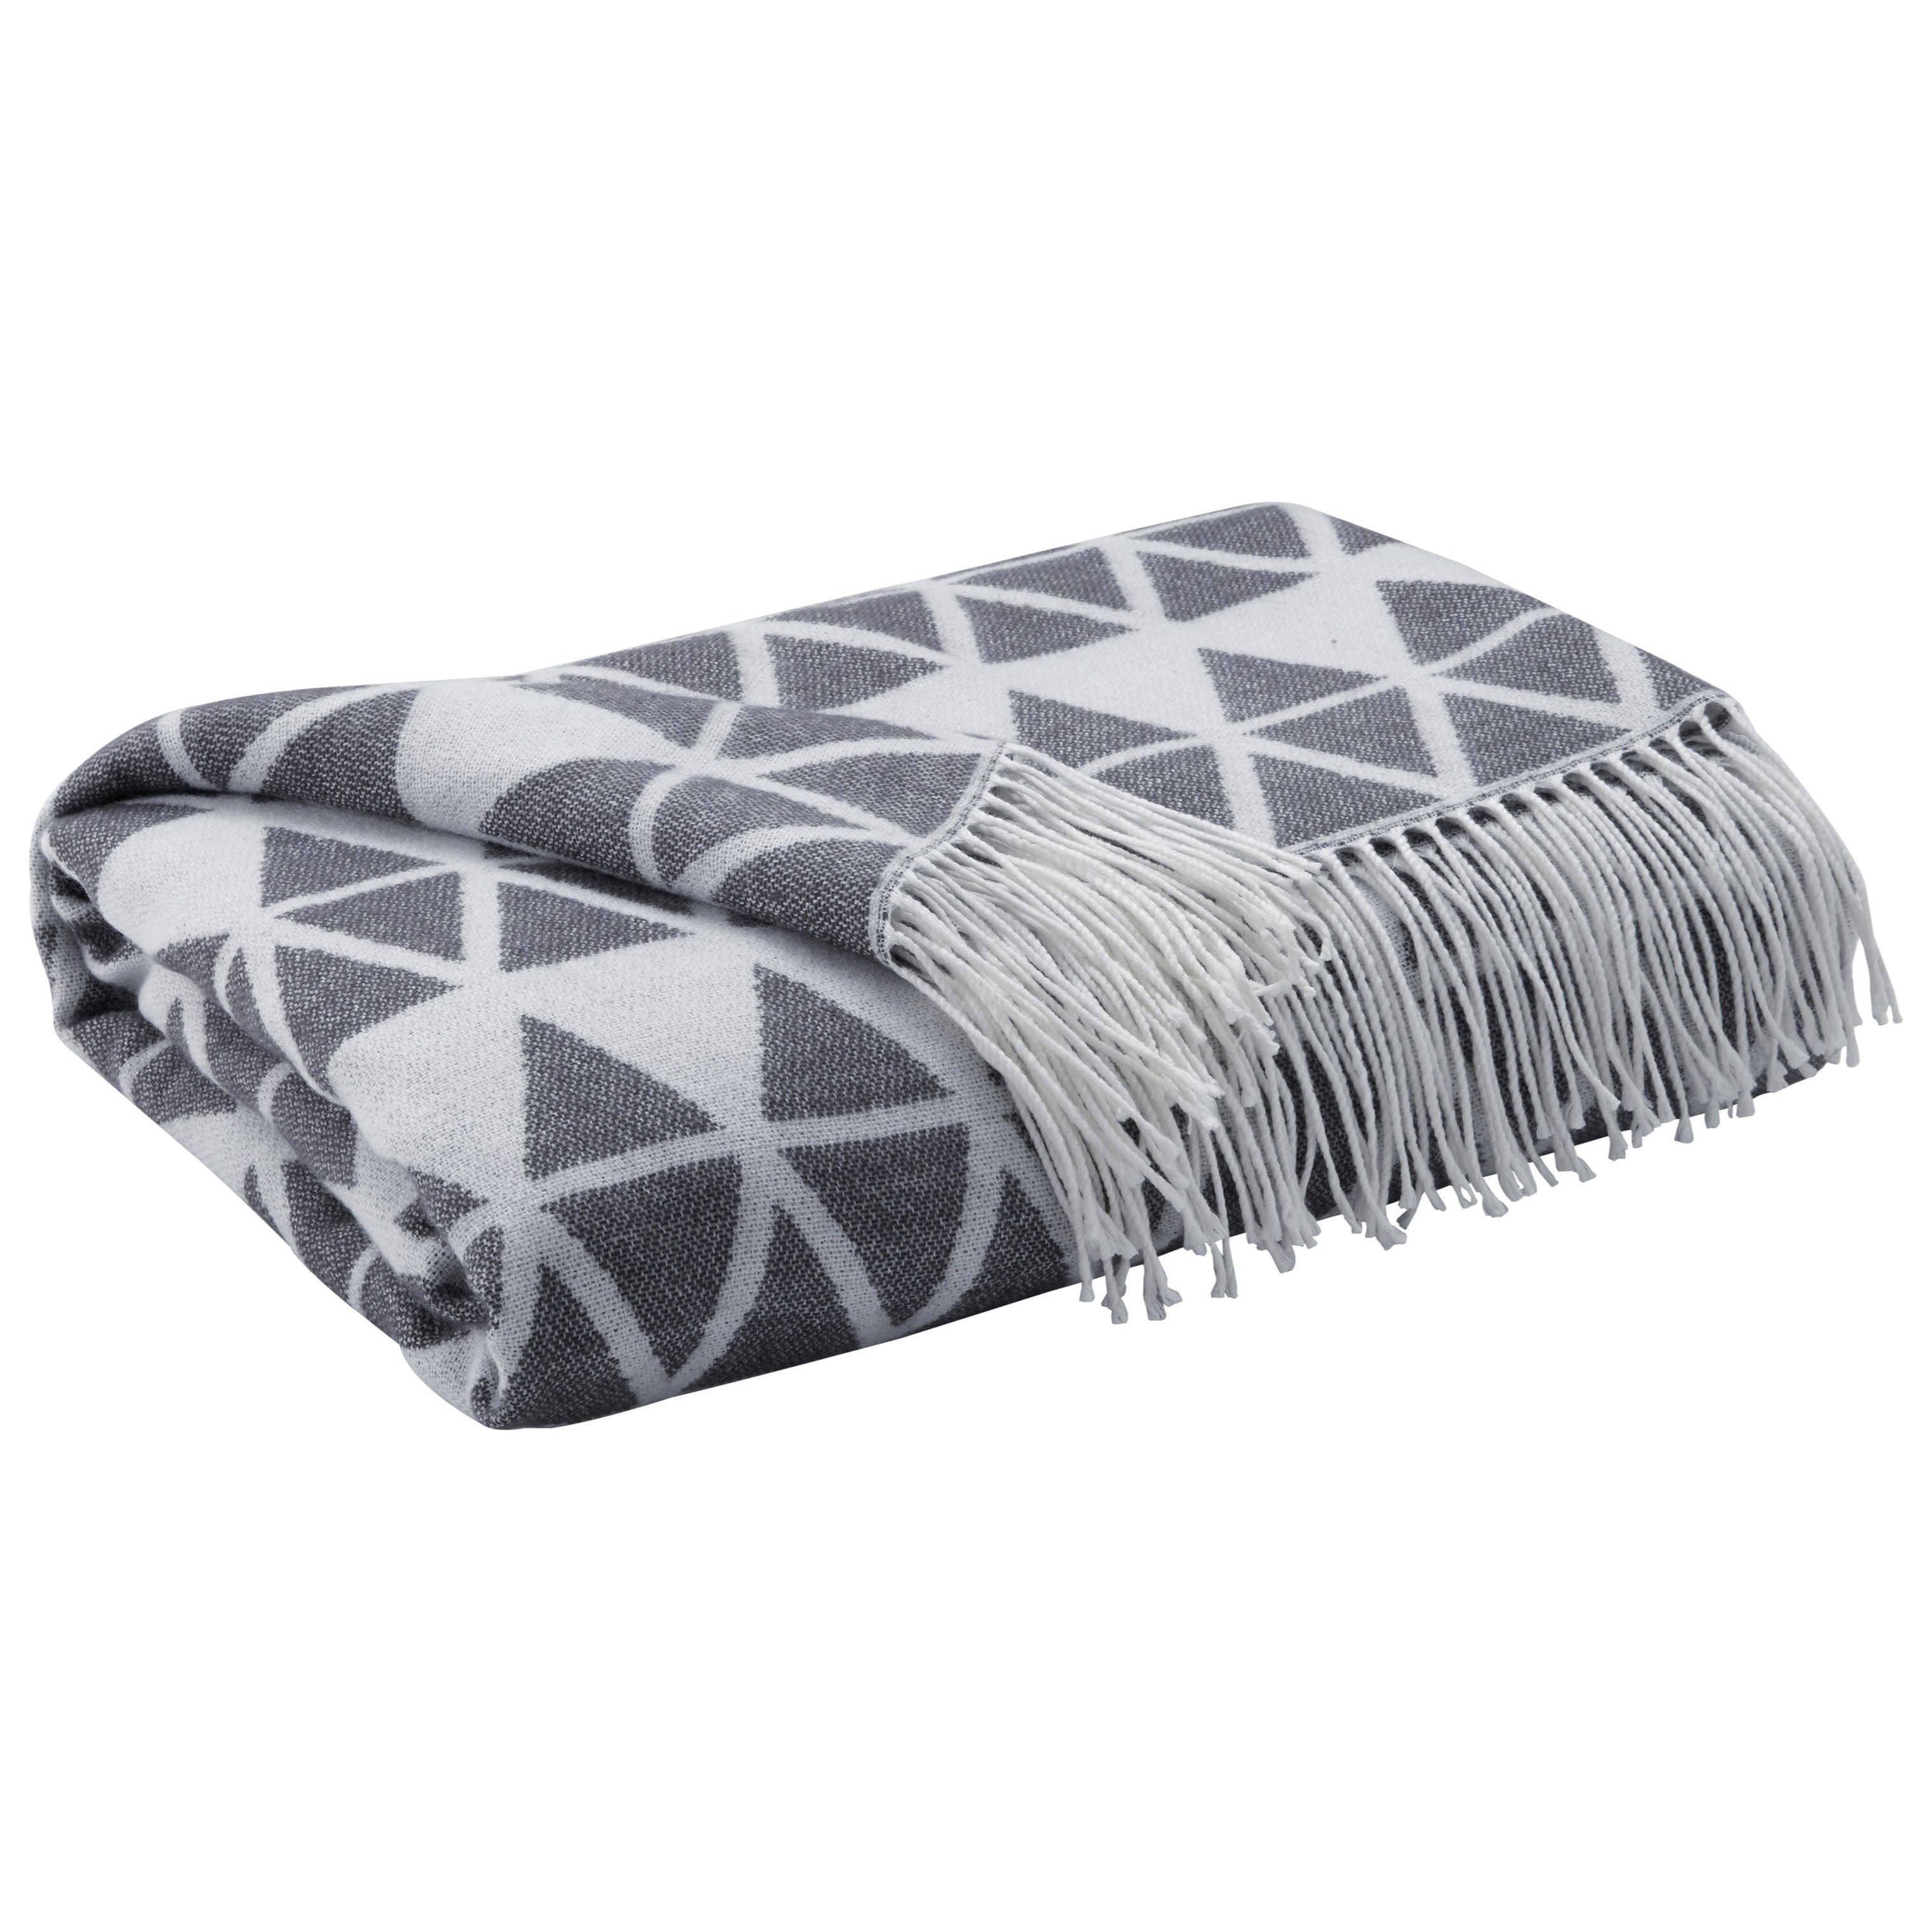 Throws Noemi - Slate Throw by Signature Design by Ashley at Value City Furniture